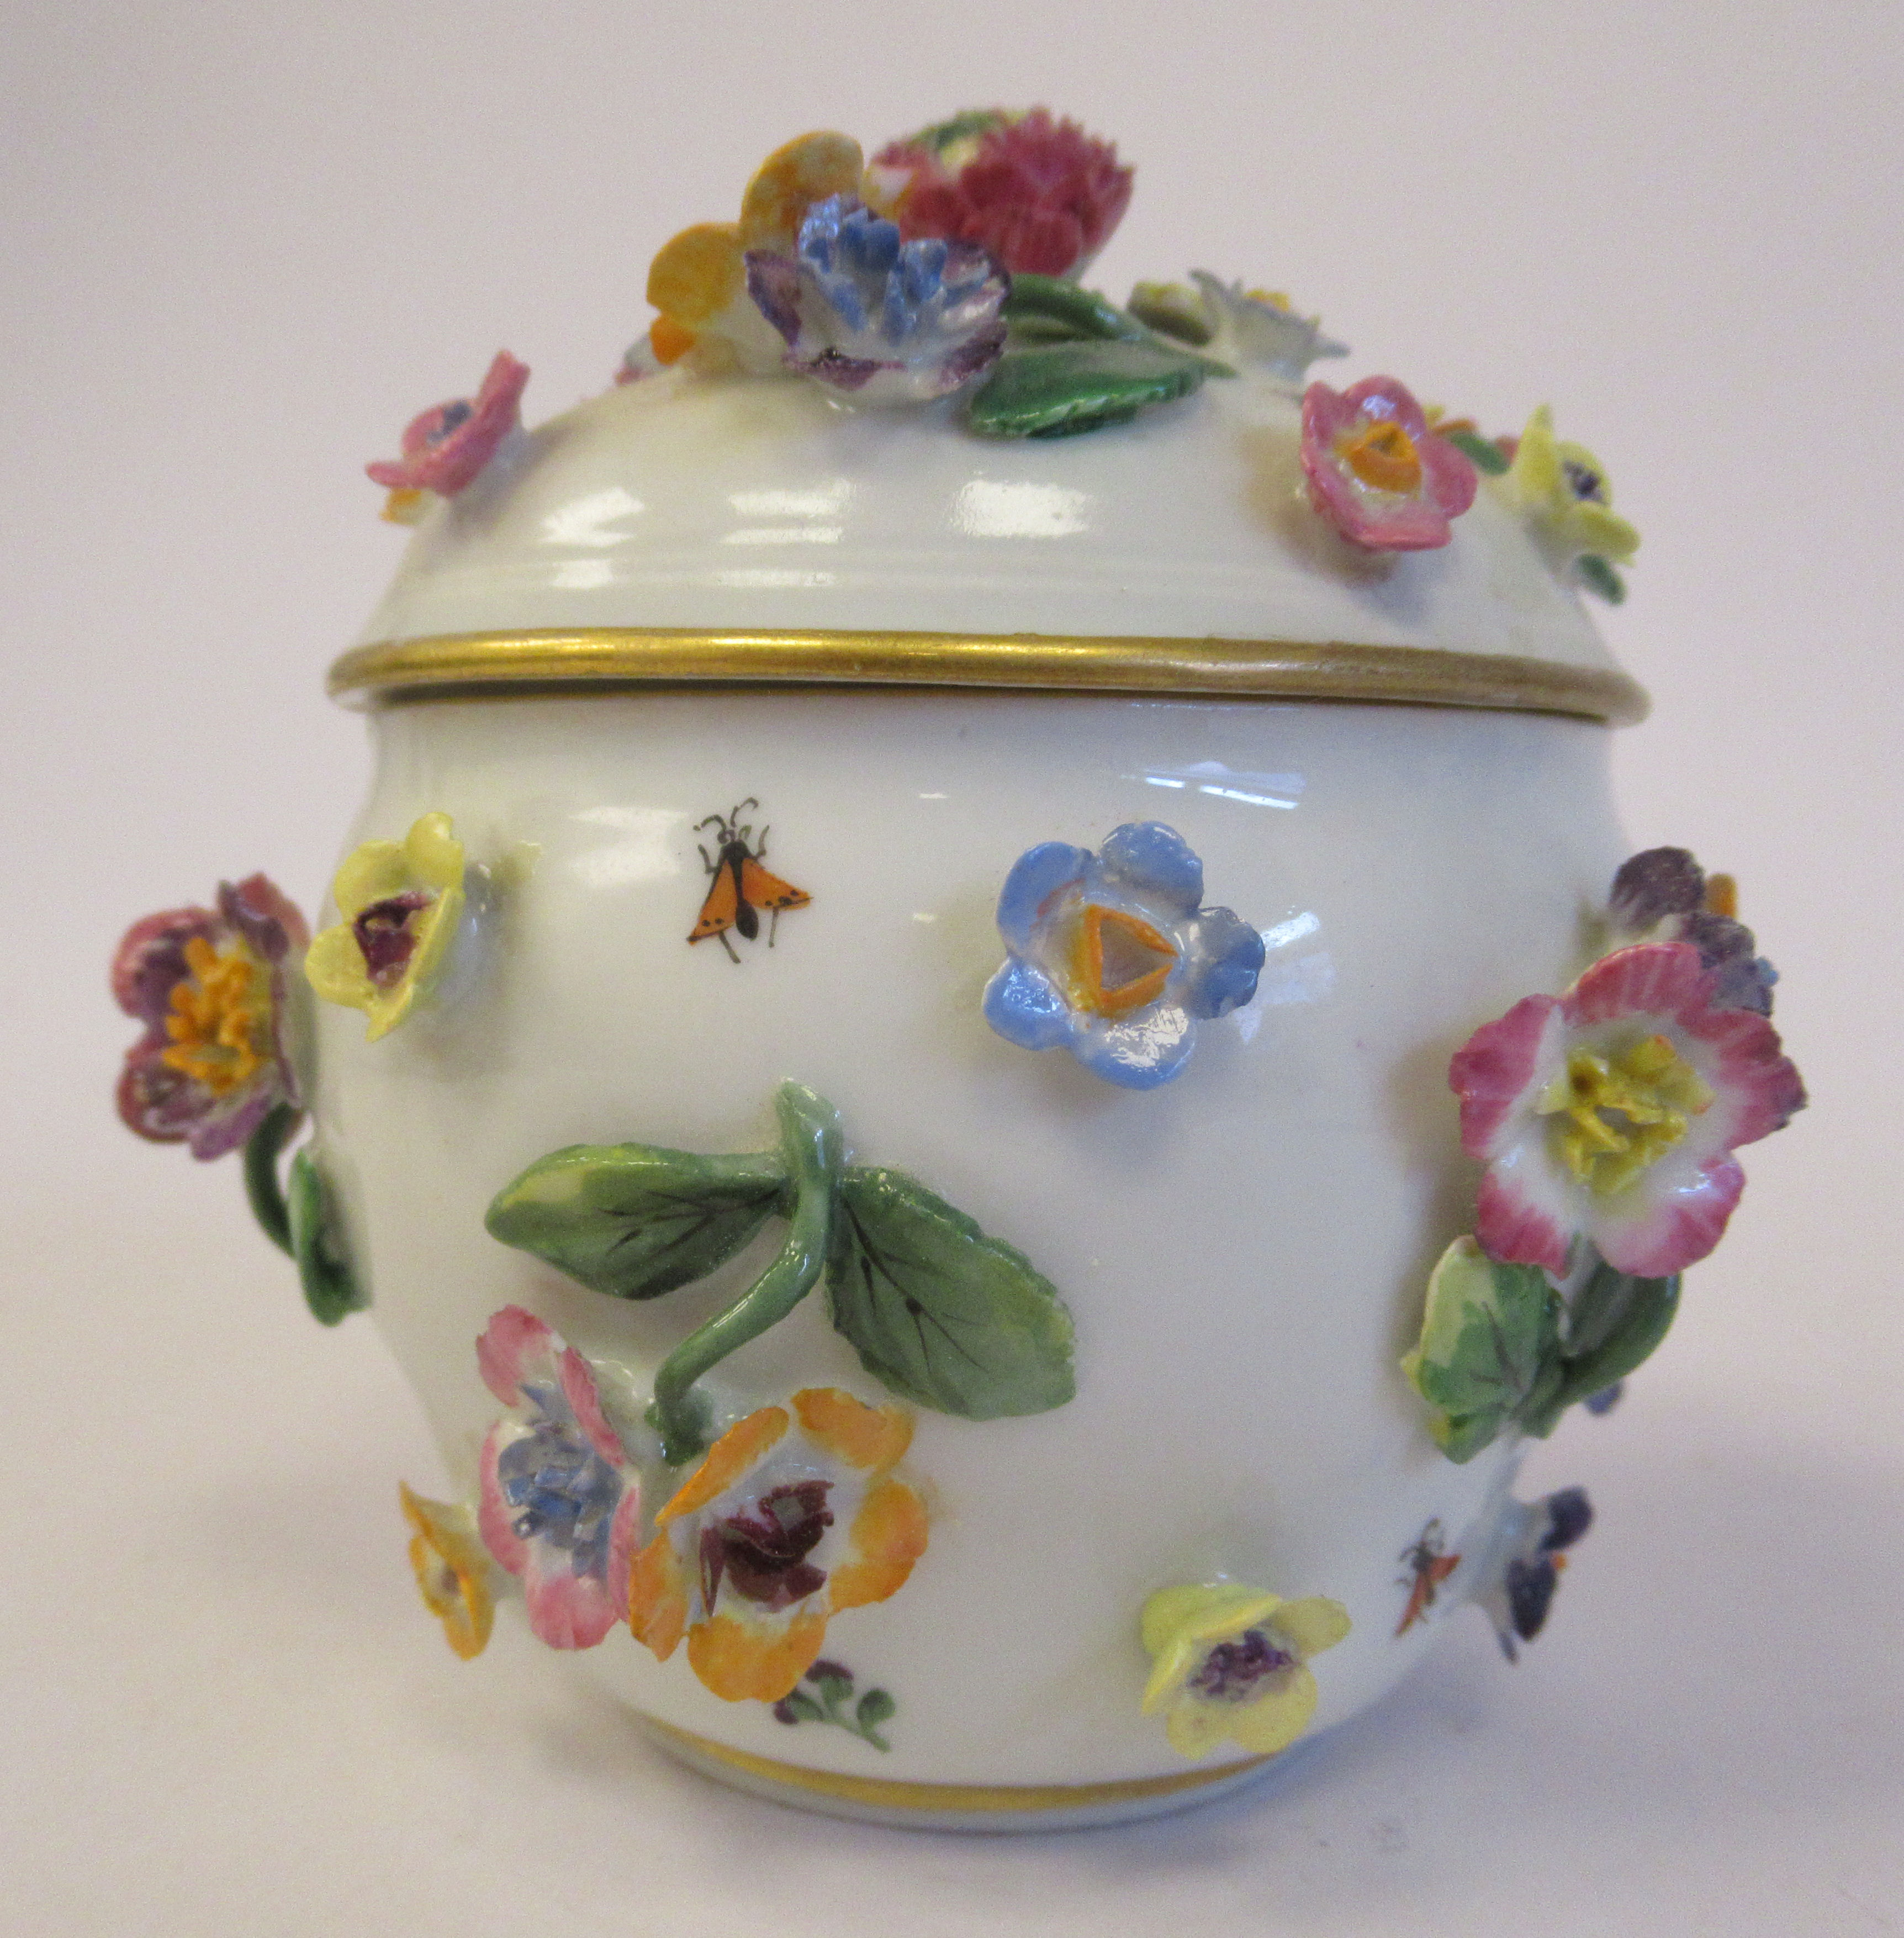 A 19thC Meissen porcelain bulbous pot and domed cover, decorated with encrusted flora and painted - Image 3 of 6